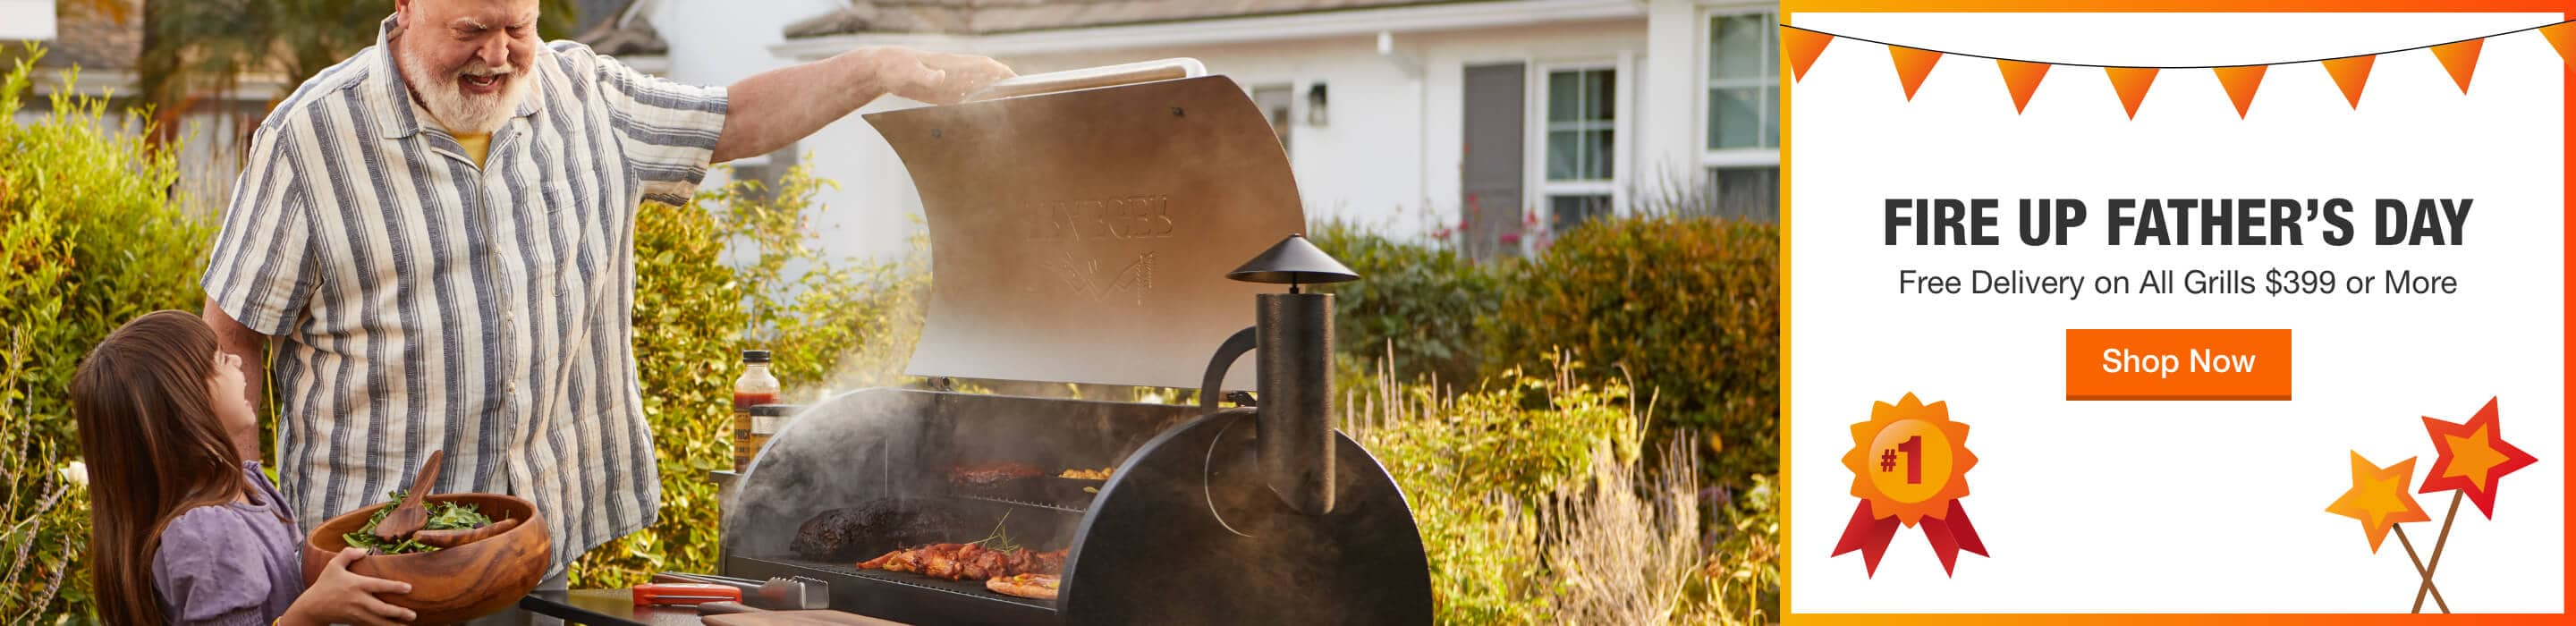 FIRE UP FATHER'S DAY - Free Delivery on All Grills $399 or More. Shop Now